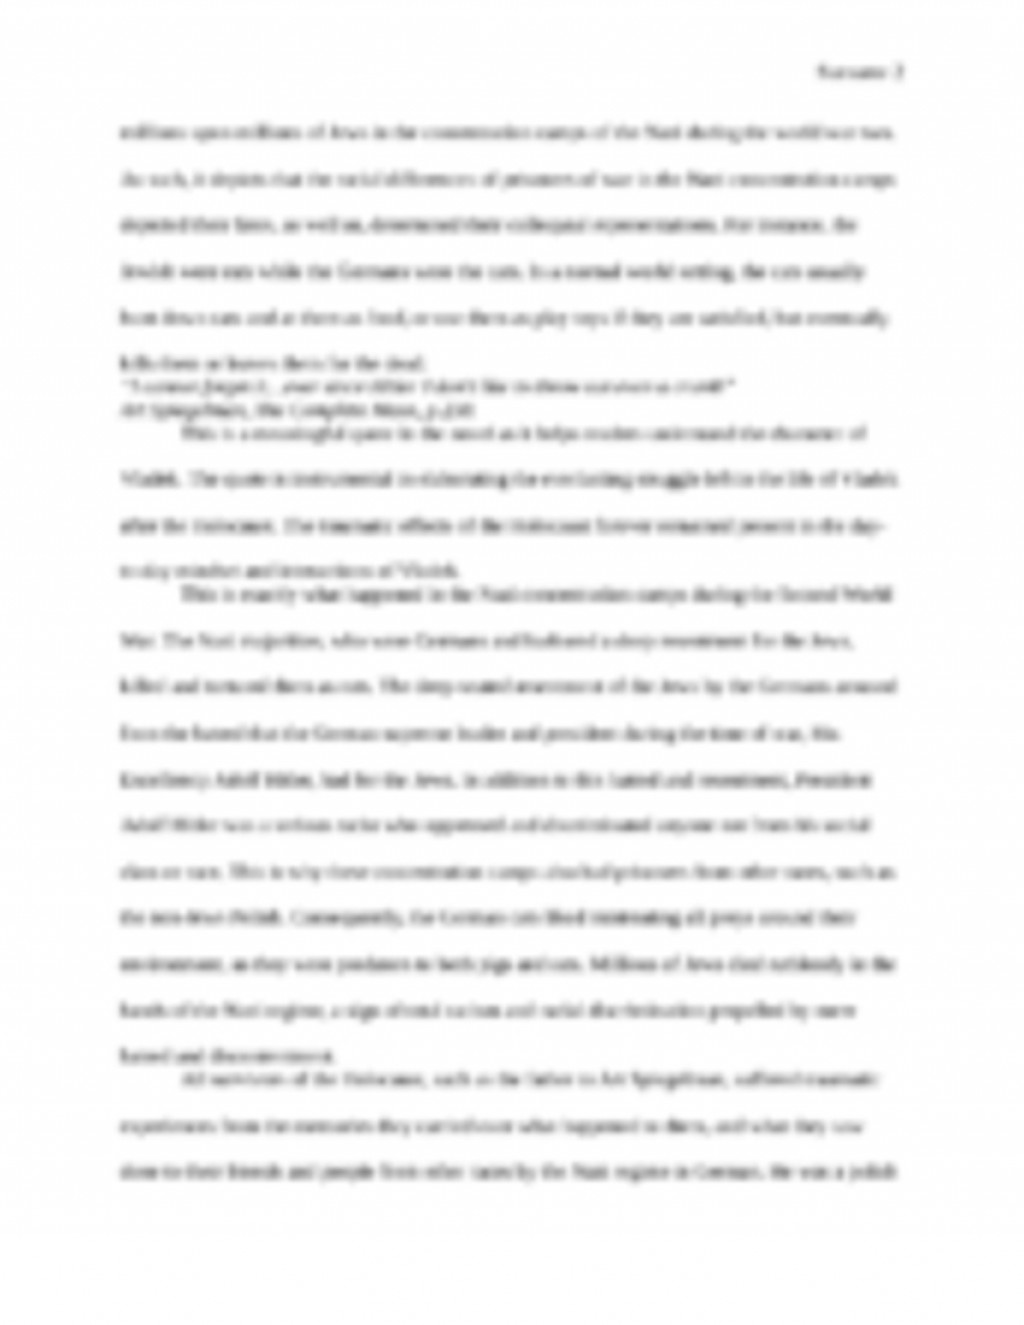 003 The20complete20maus 1page1 Essay Example On Singular Maus Mausam E Sarma In Hindi Bahar Urdu Large